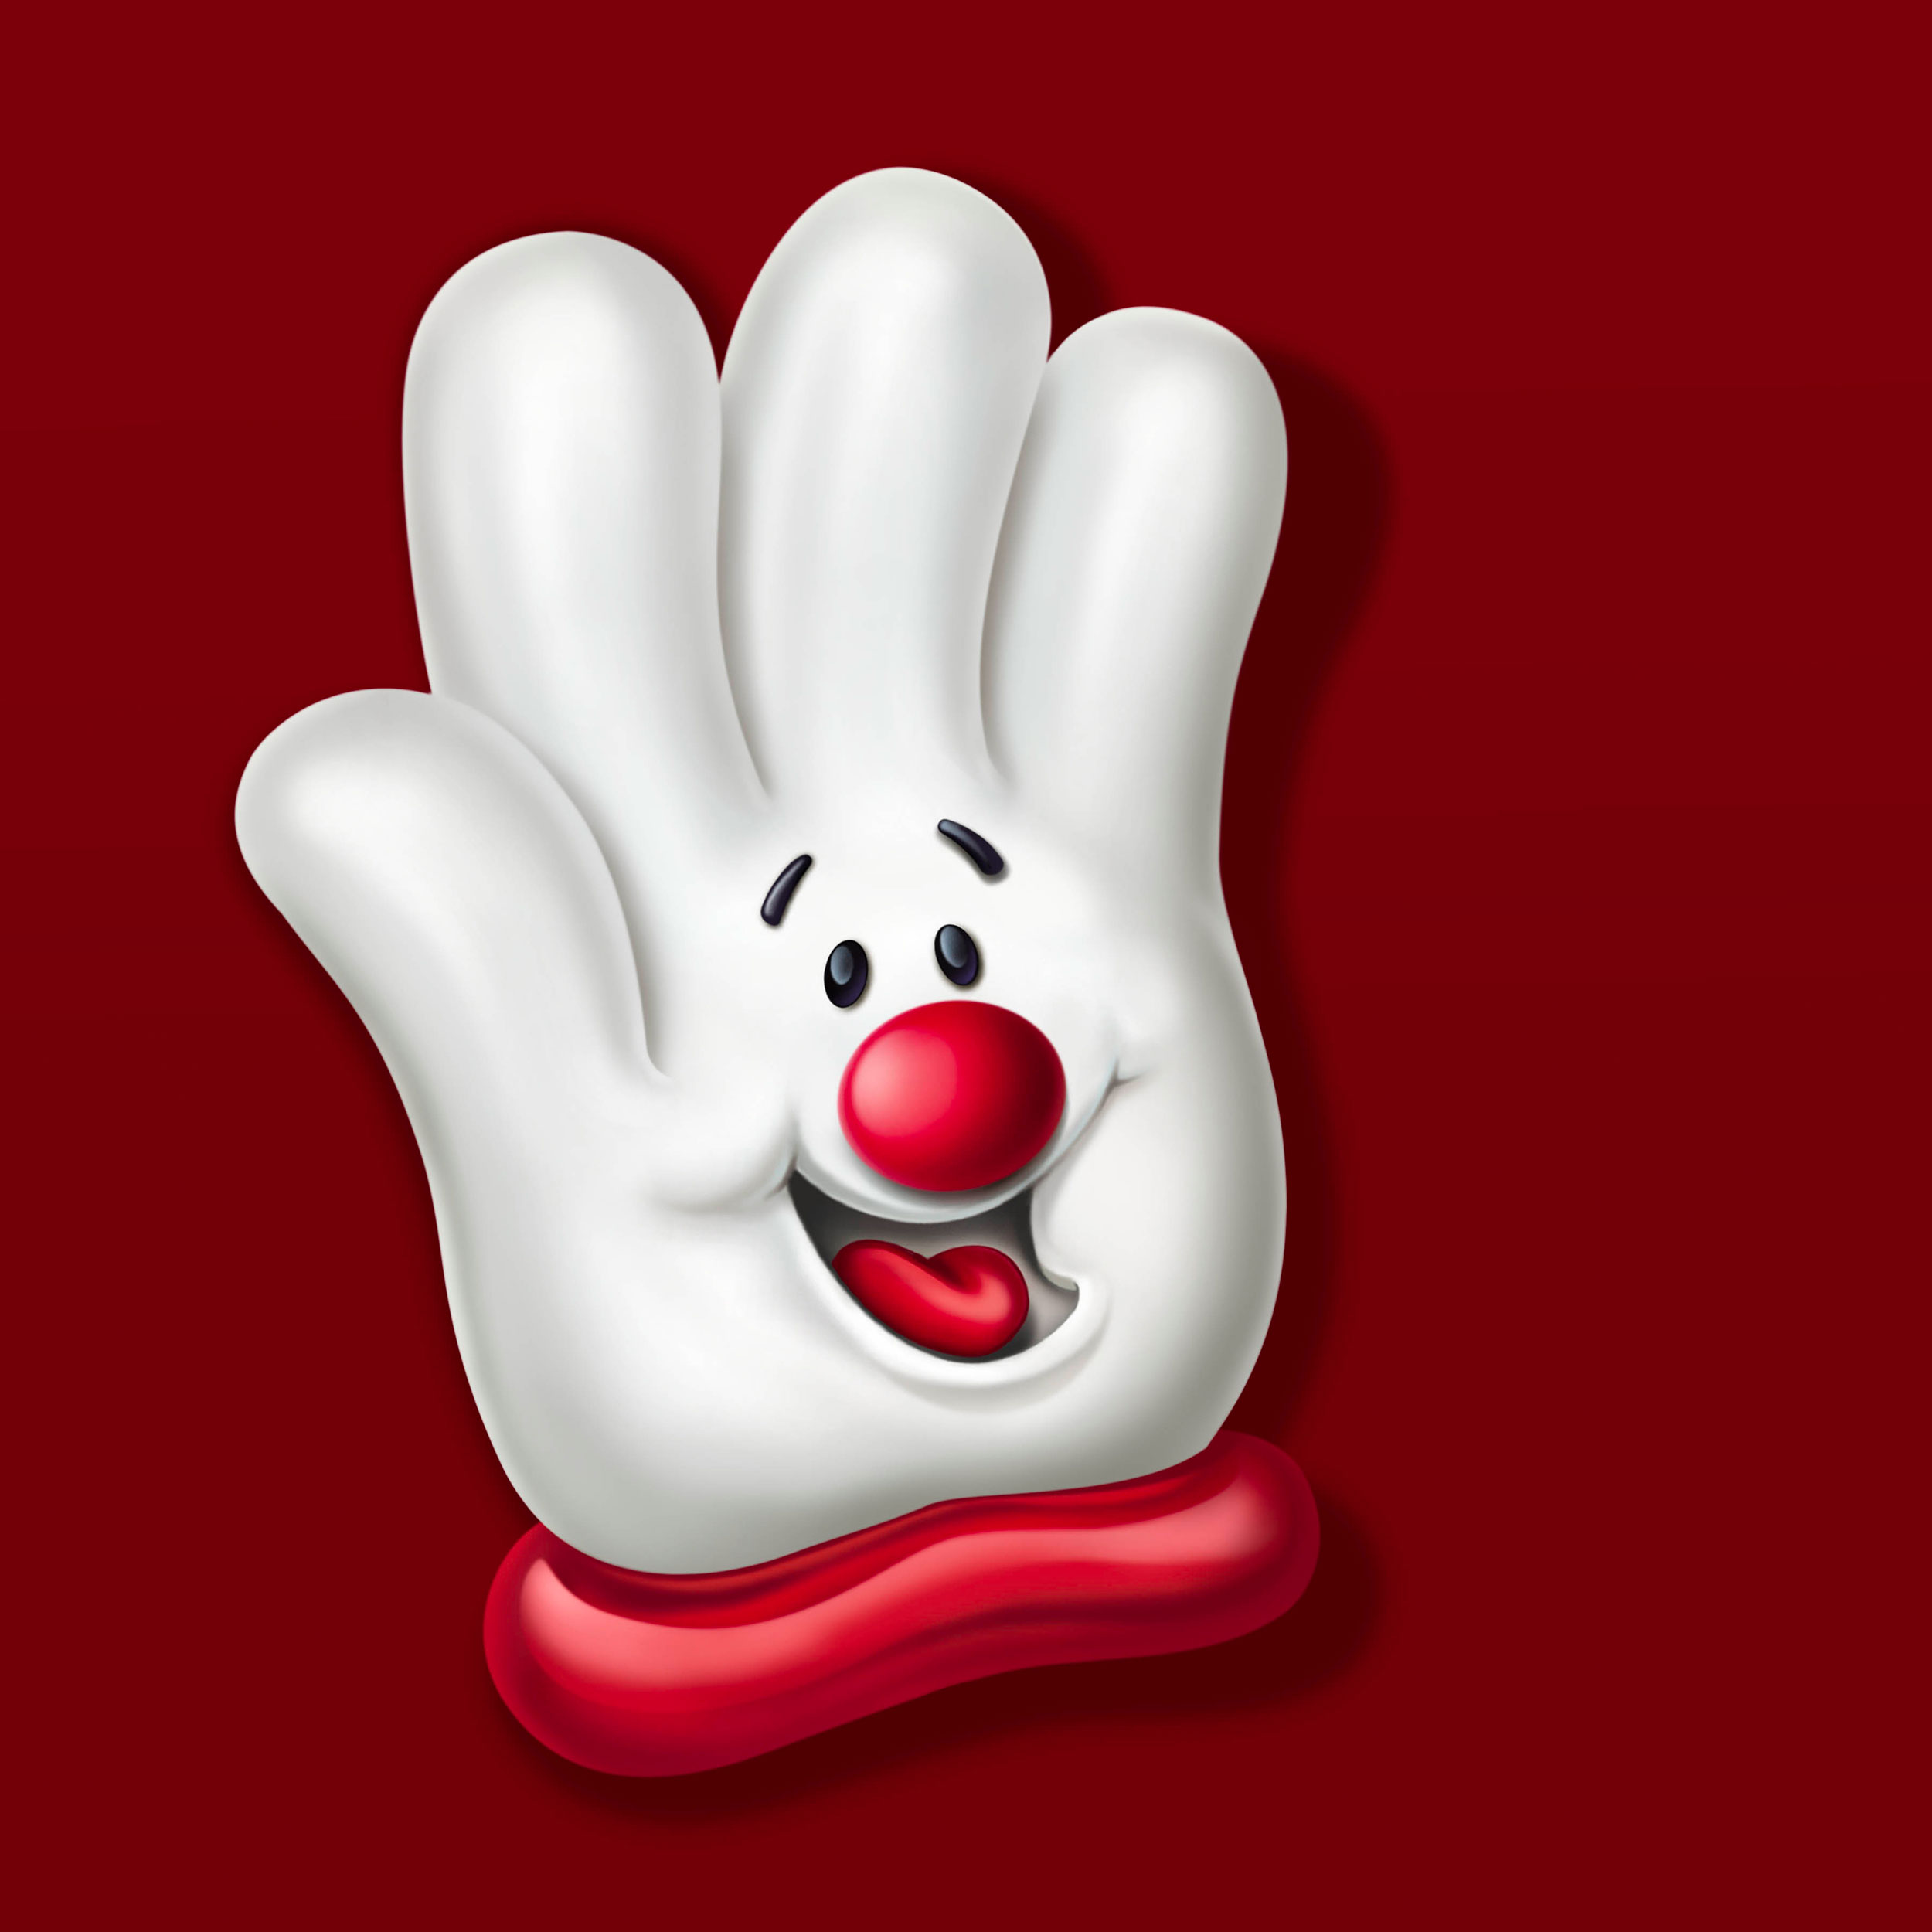 mike wepplo photoreal photography hamburger helper glove